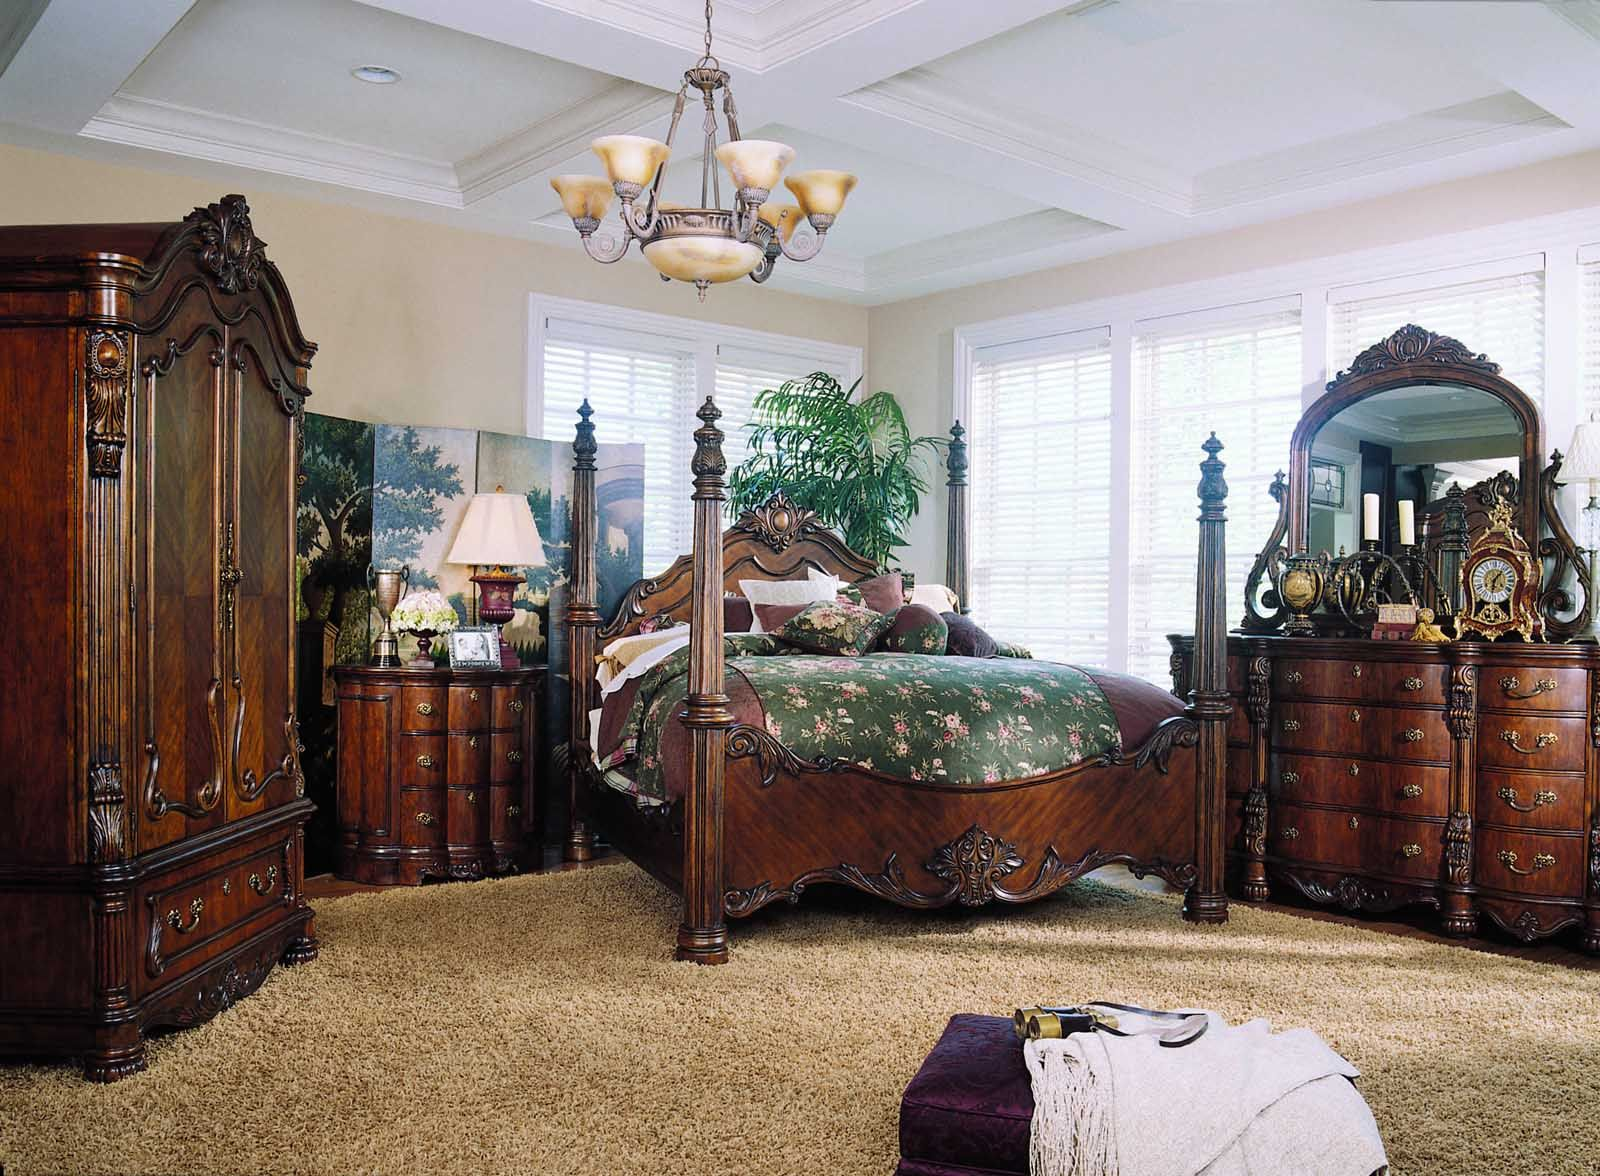 Delicieux Edwardian Poster Bedroom Set By Pulaski Furniture At Wholesale Furniture  Brokers Canada. This Luxurious Bedroom Set Includes A Queen Poster Bed,  Dresser, ...